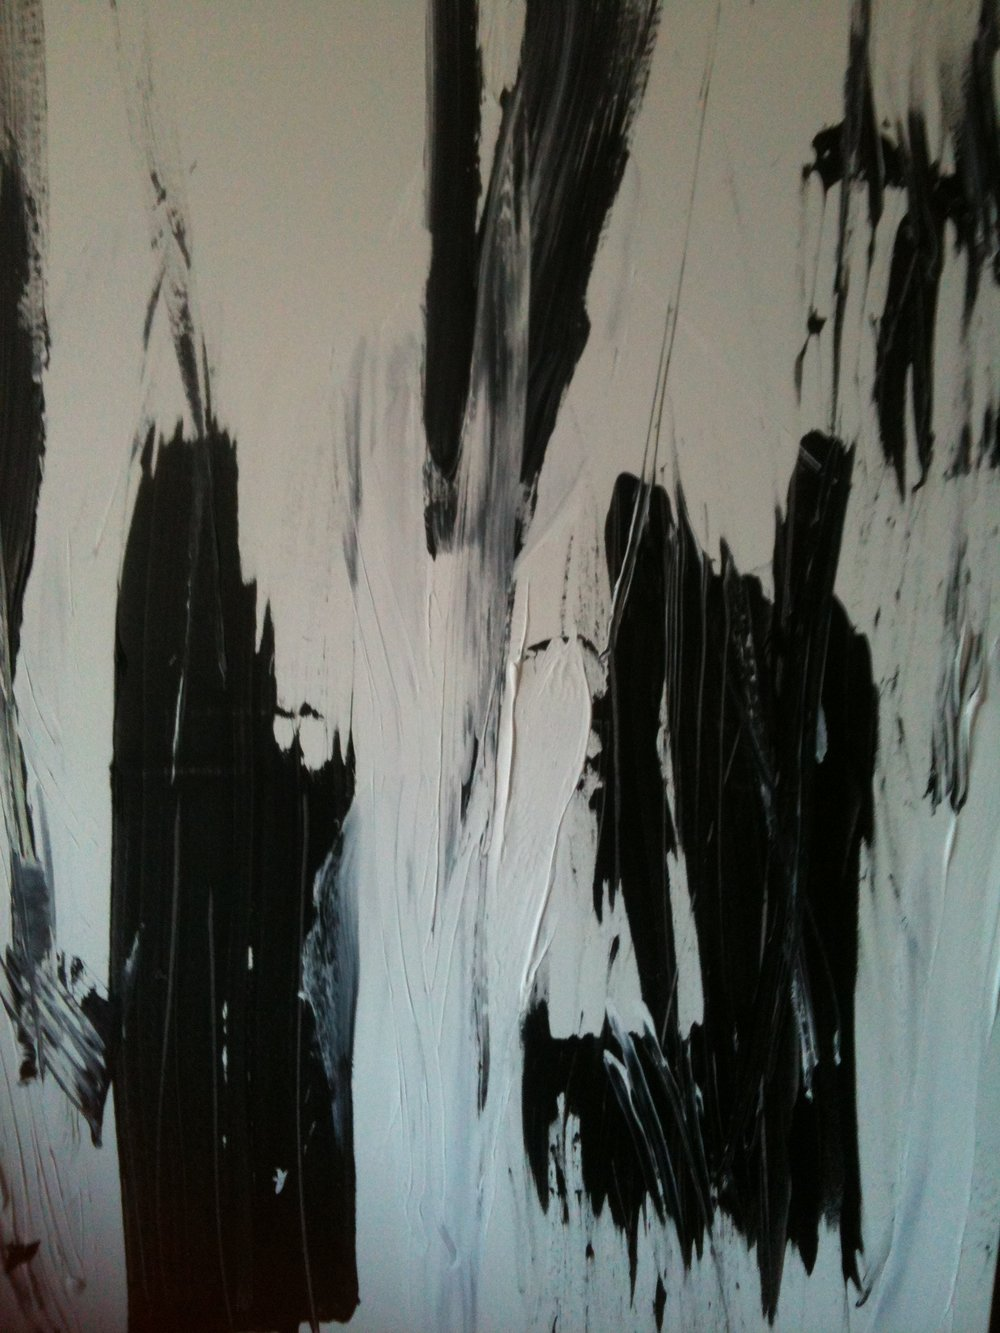 black and white series no. 1 / acrylic on canvas / 48 in. x 36 in.